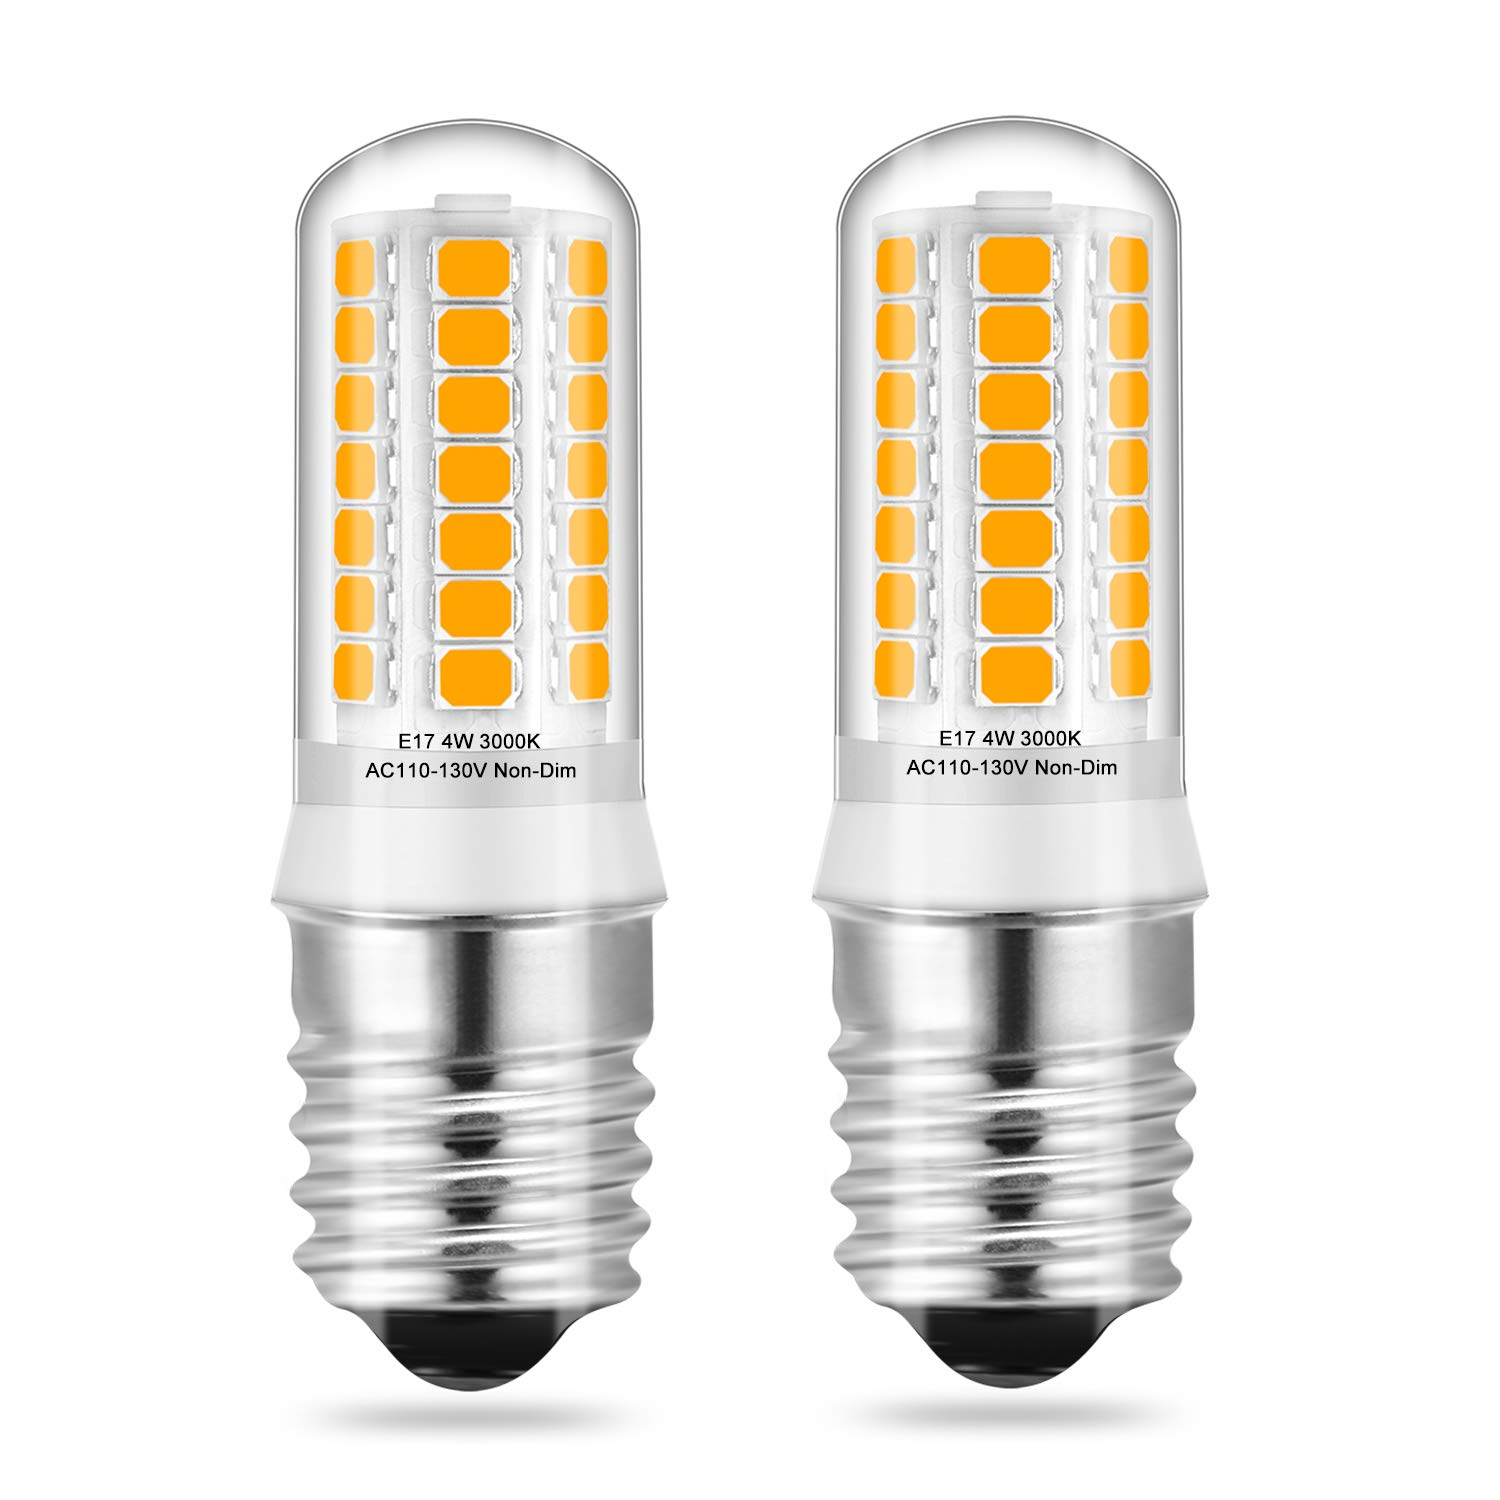 2 x E17 LED Bulbs, for Under Microwave Light Bulbs, Over Stove Lights, Home Lighting, Warm White 3000K, 4W 40W Halogen/Incandescent Bulbs Replacement,AC110-130V Non-dimmable